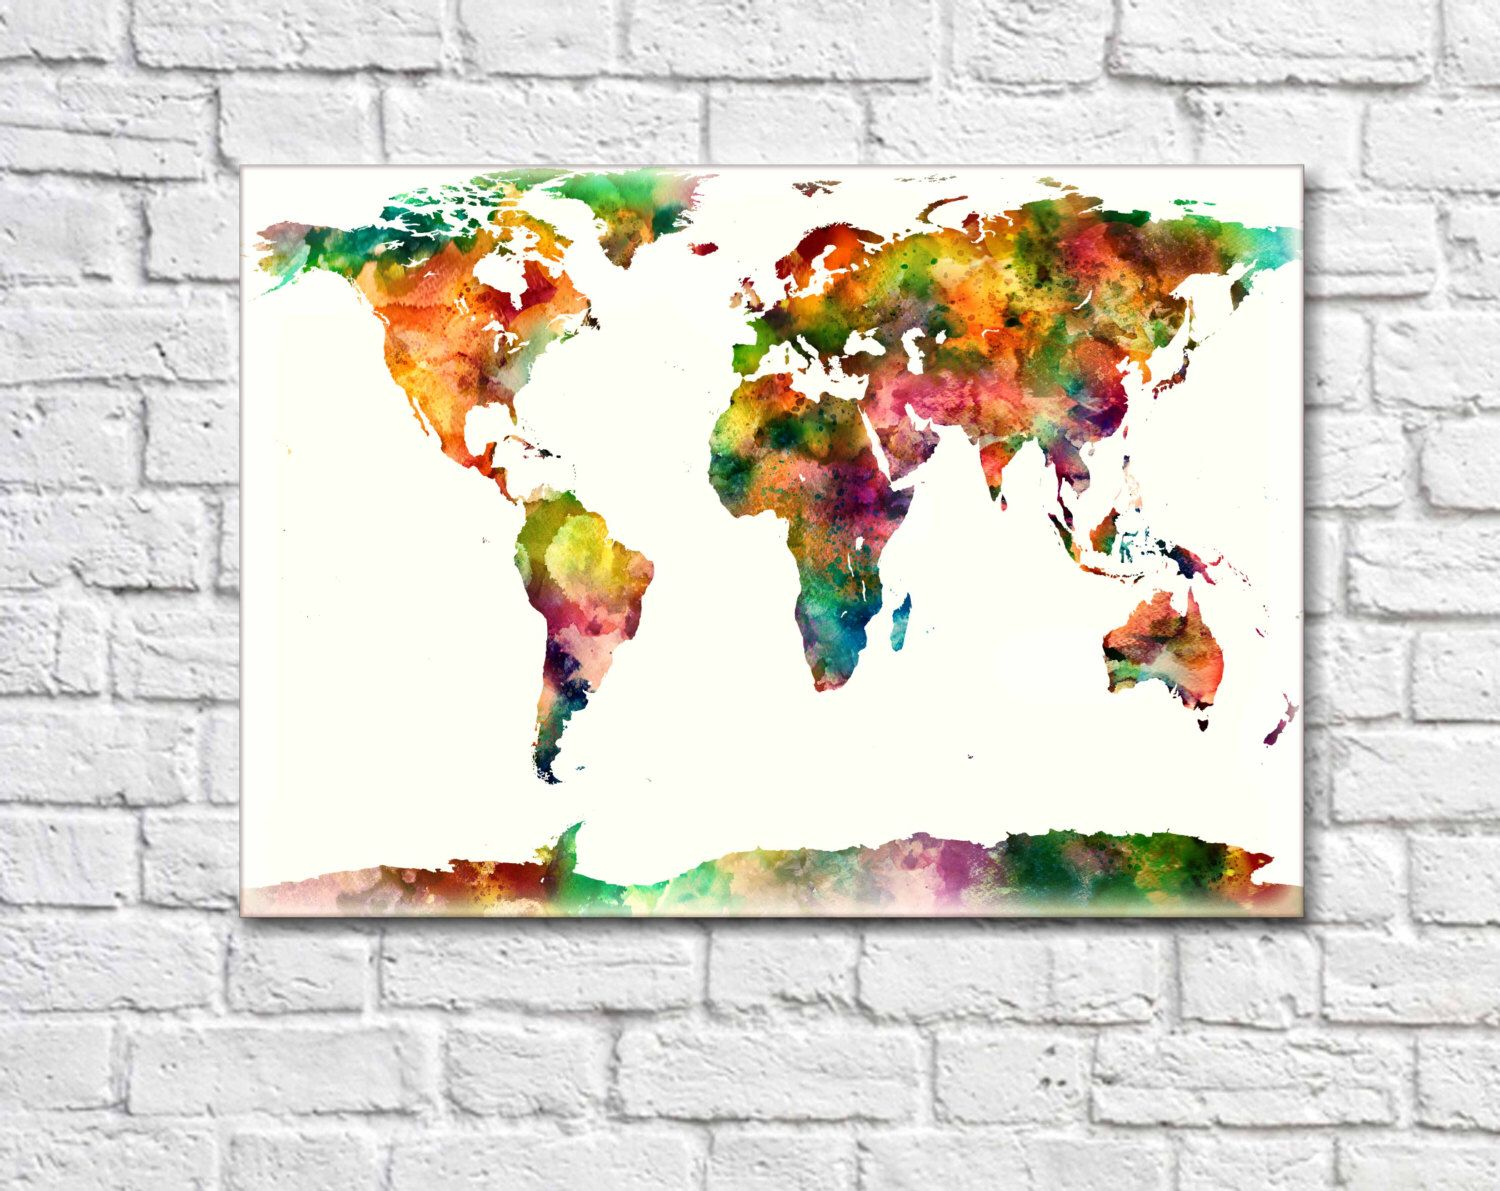 World map poster world map print large world map home and living world map poster world map print large world map home and living decor world map art world map wall decor gumiabroncs Image collections